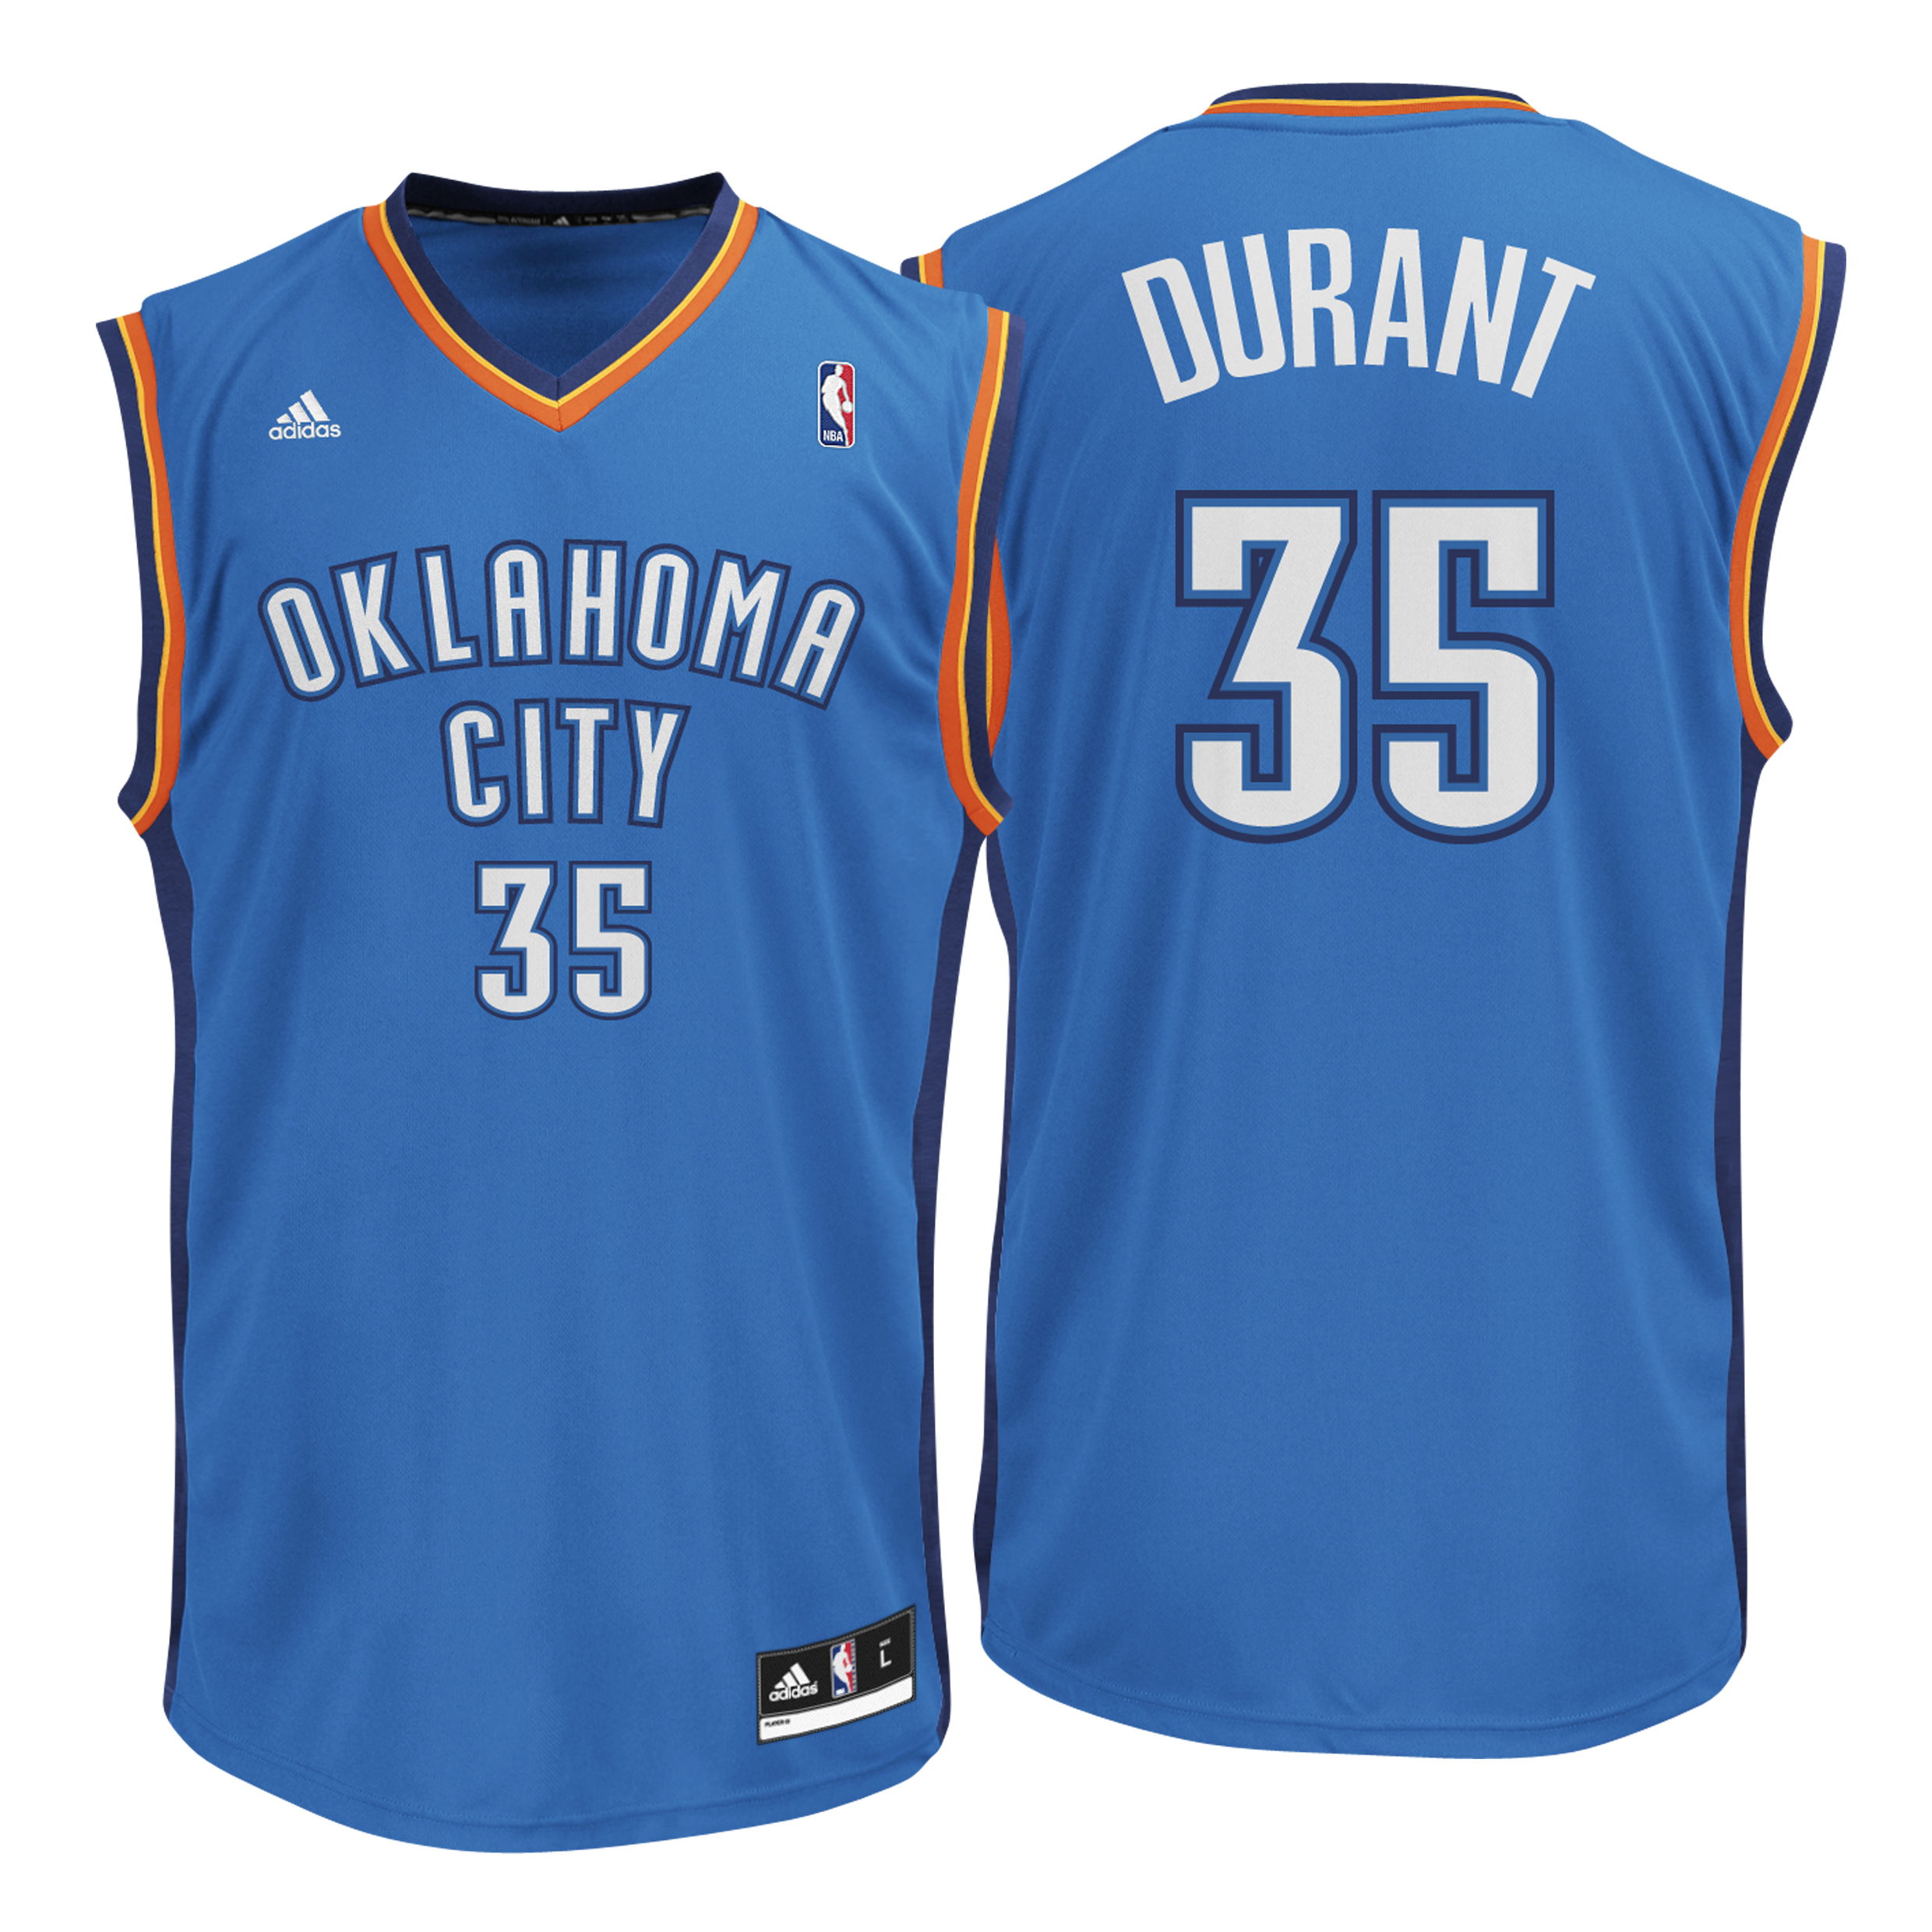 Oklahoma City Thunder Road Replica Jersey - Kevin Durant - Mens